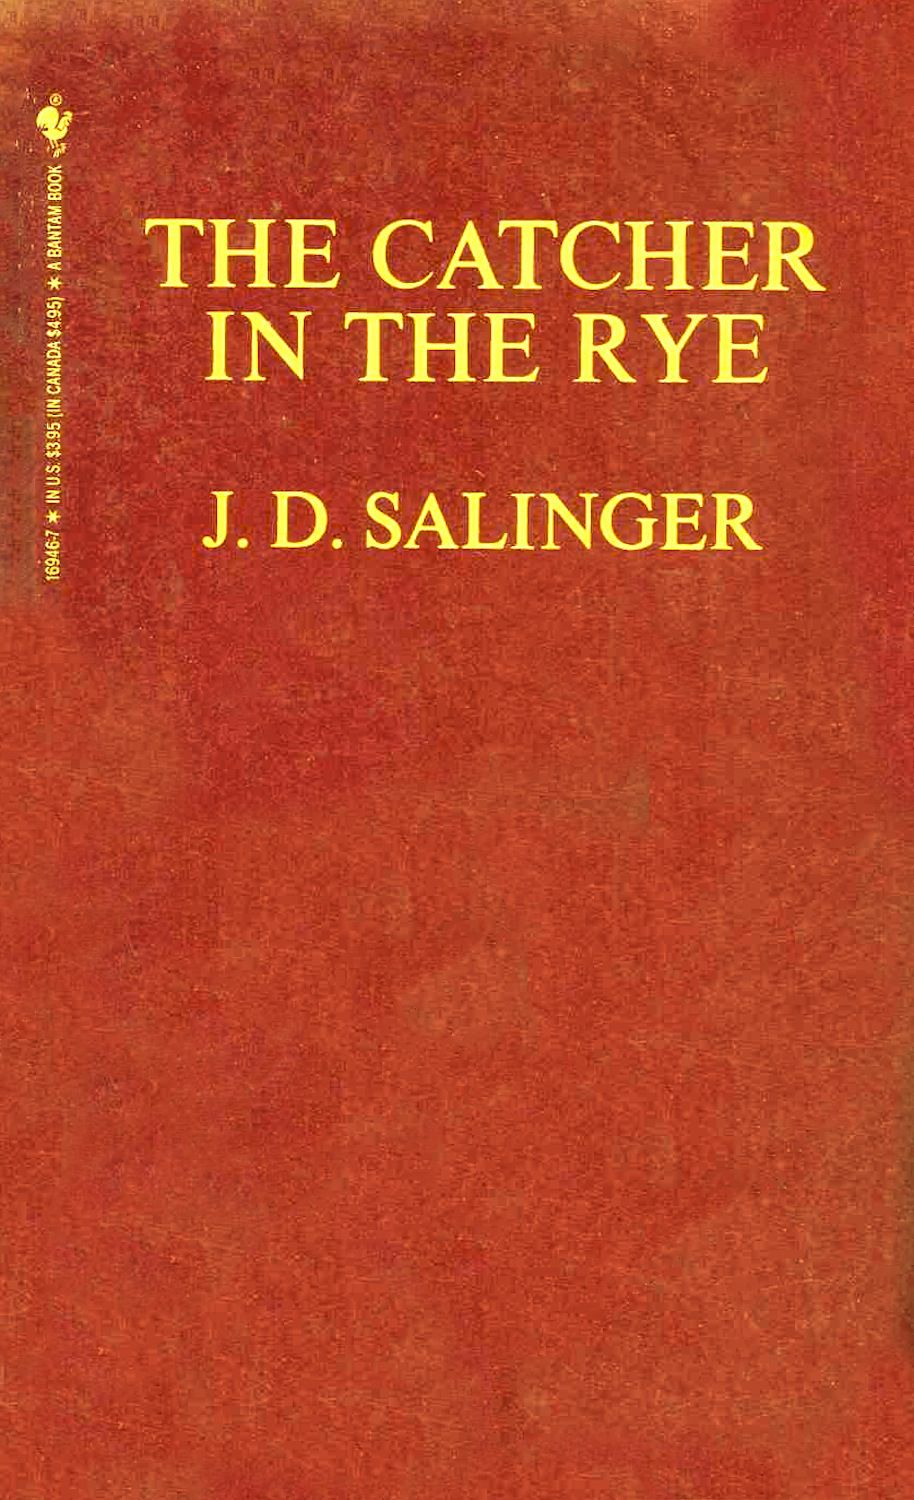 the catcher in the rye the importance of the title catcher in the rye